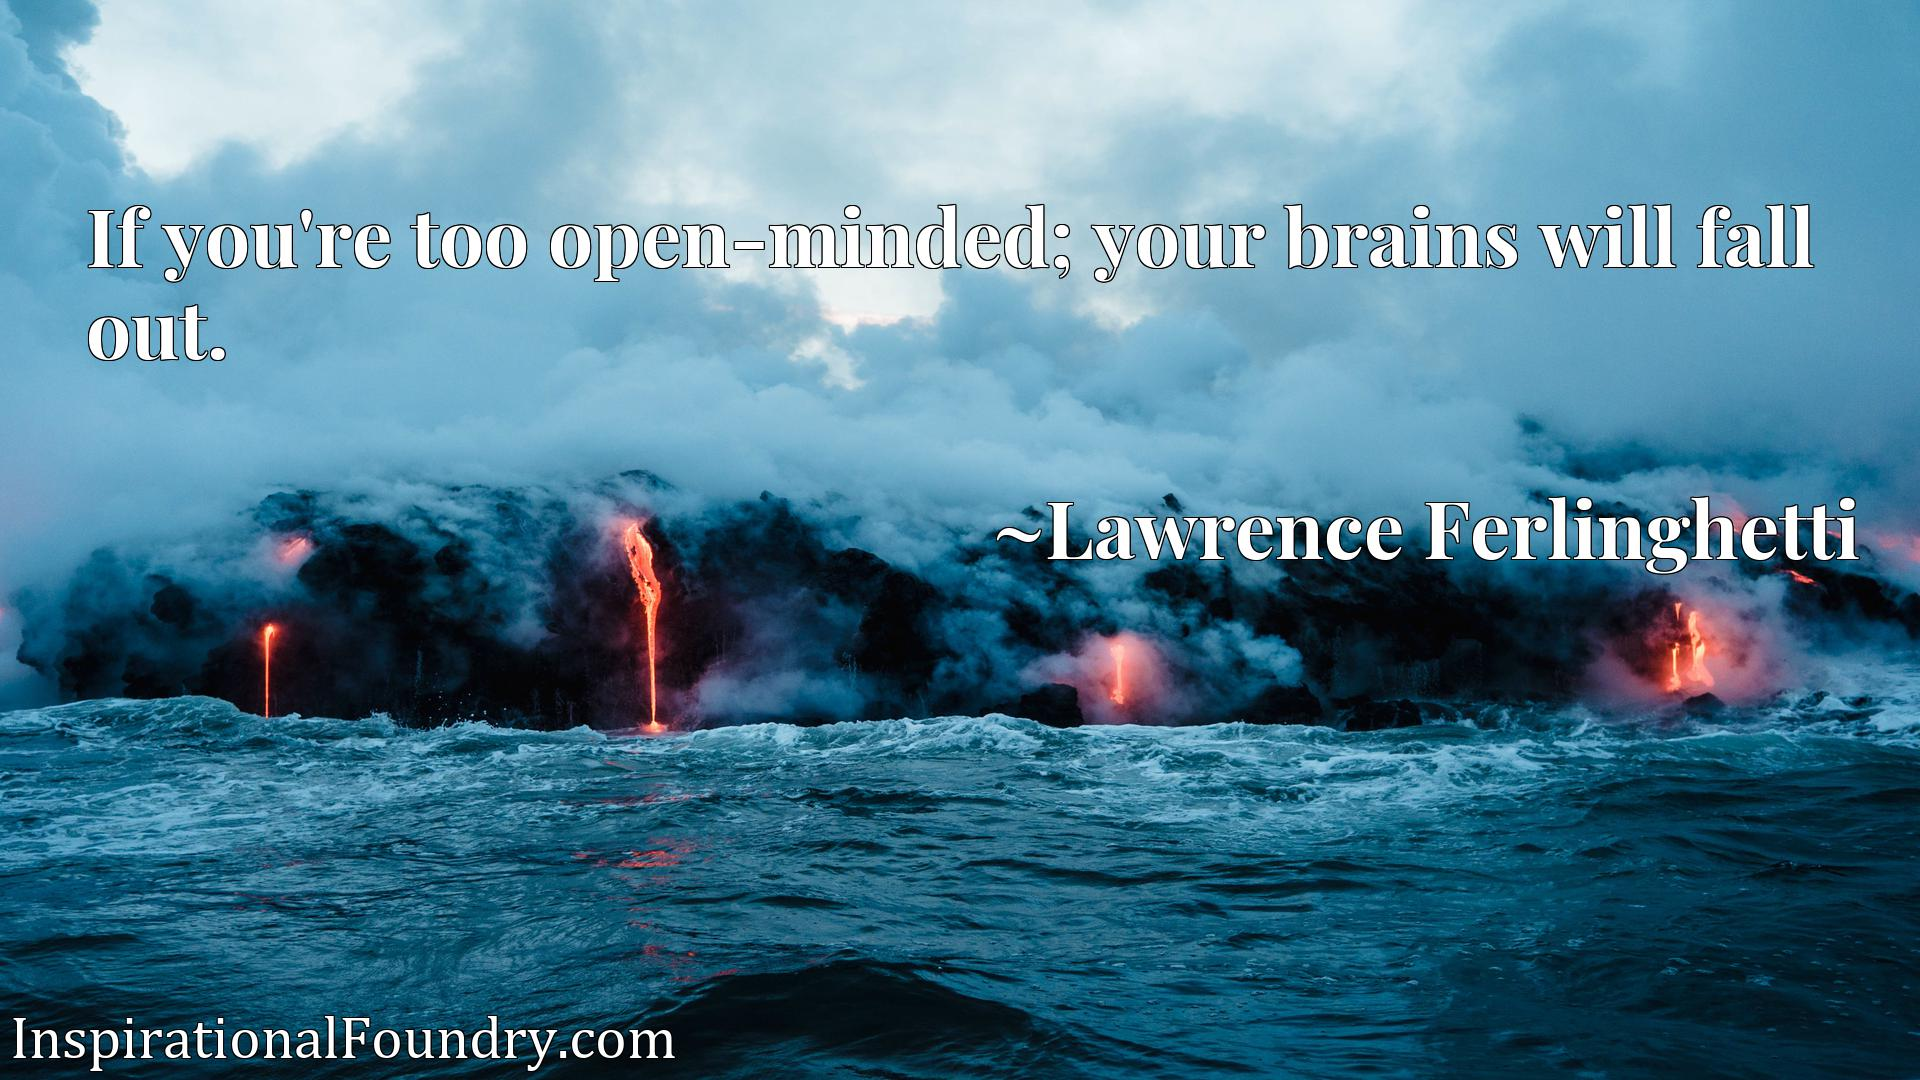 If you're too open-minded; your brains will fall out.